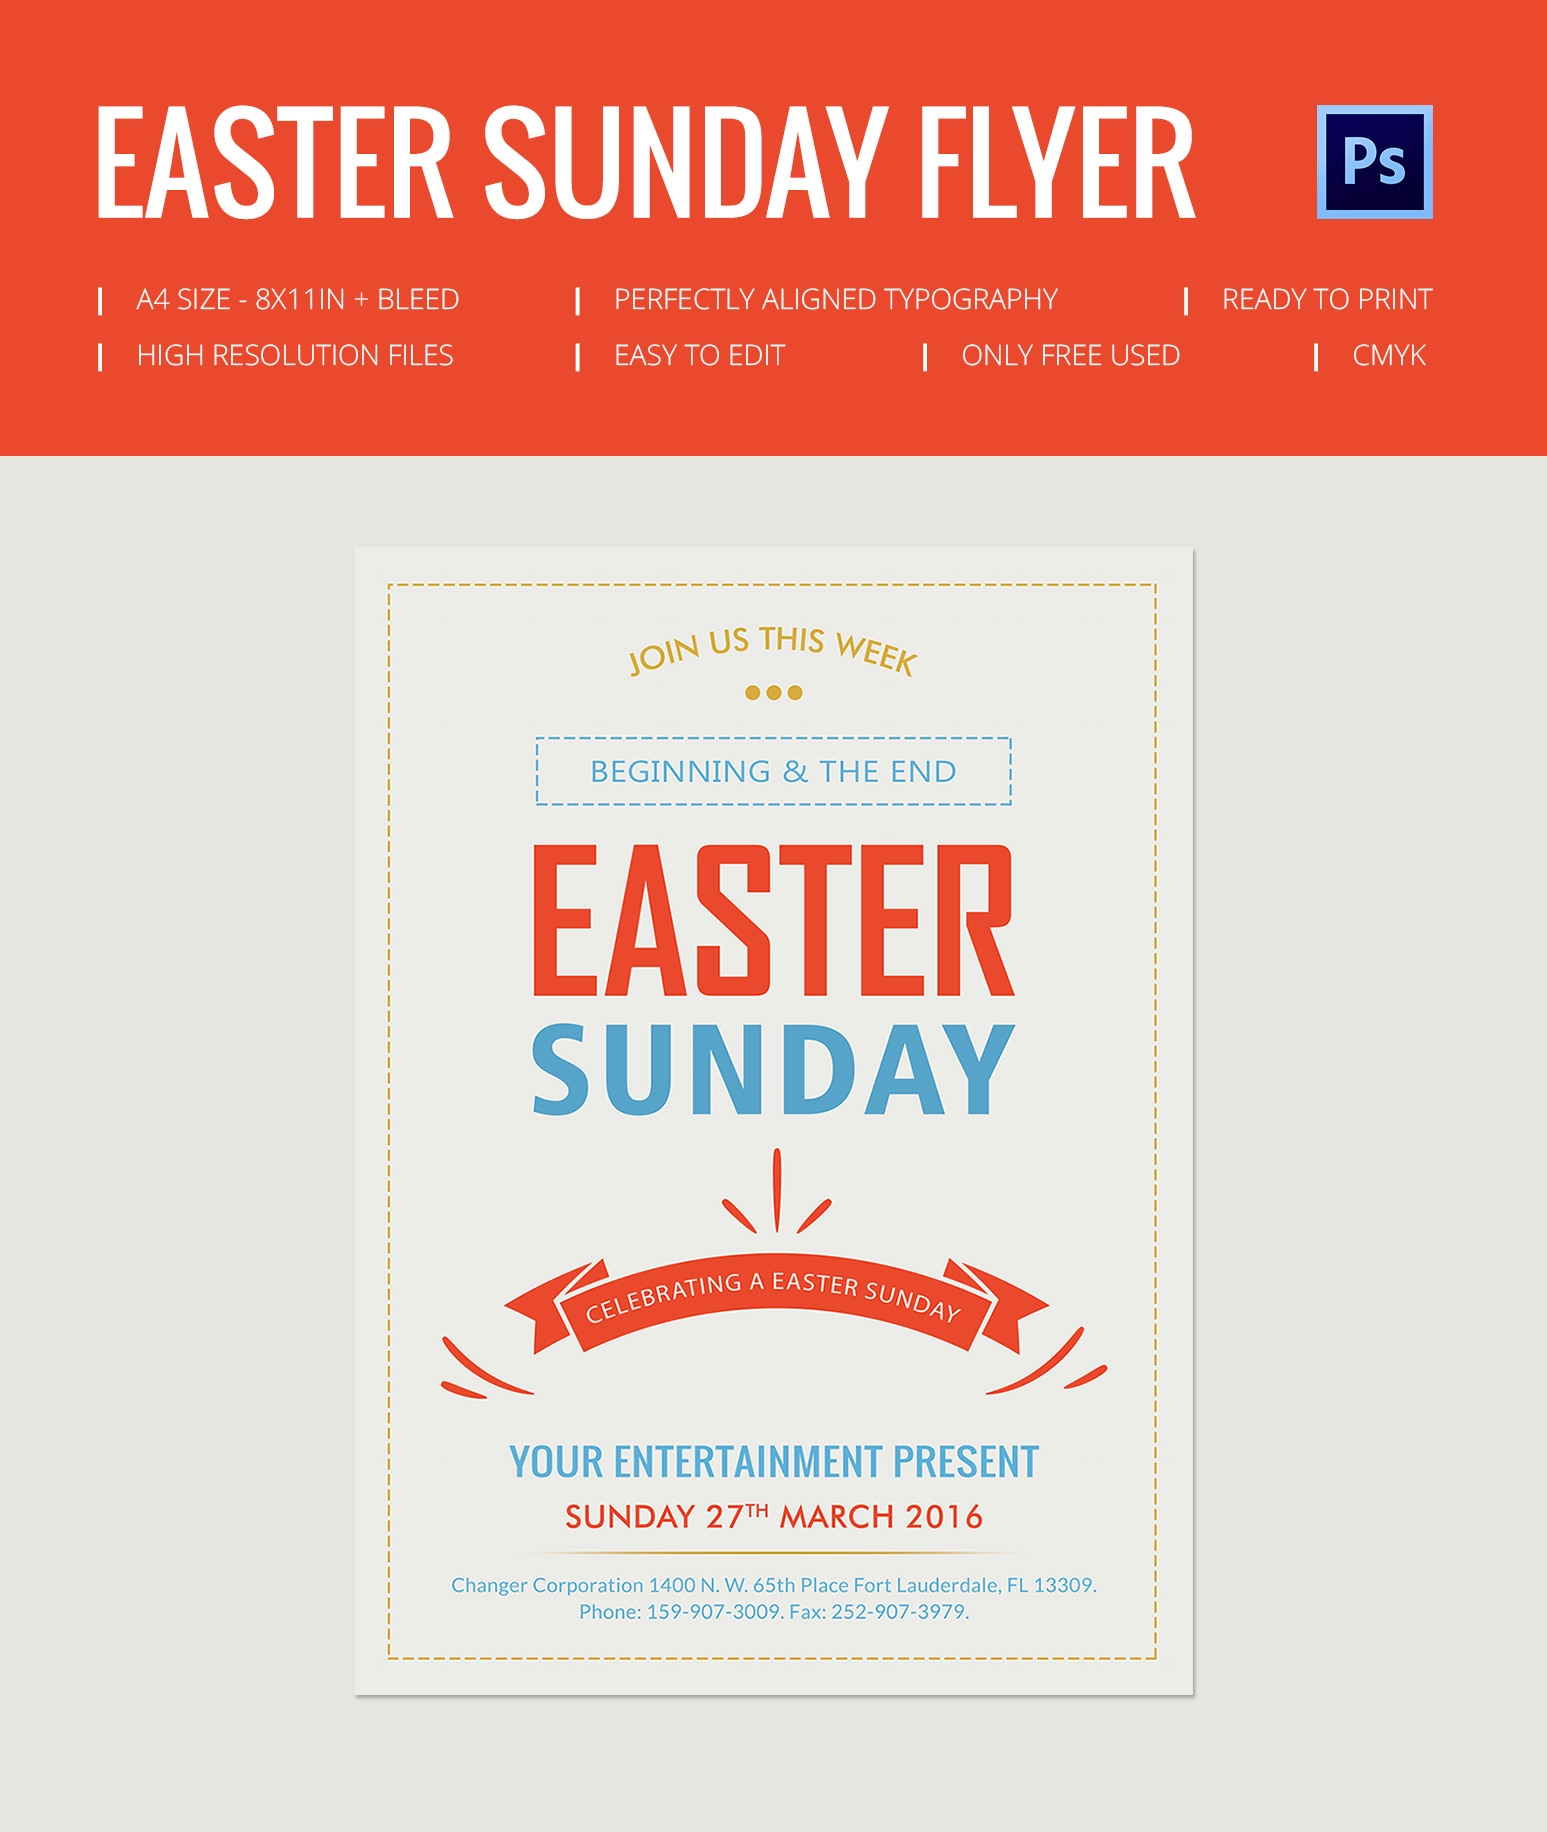 Easter_sunday_flyer_2